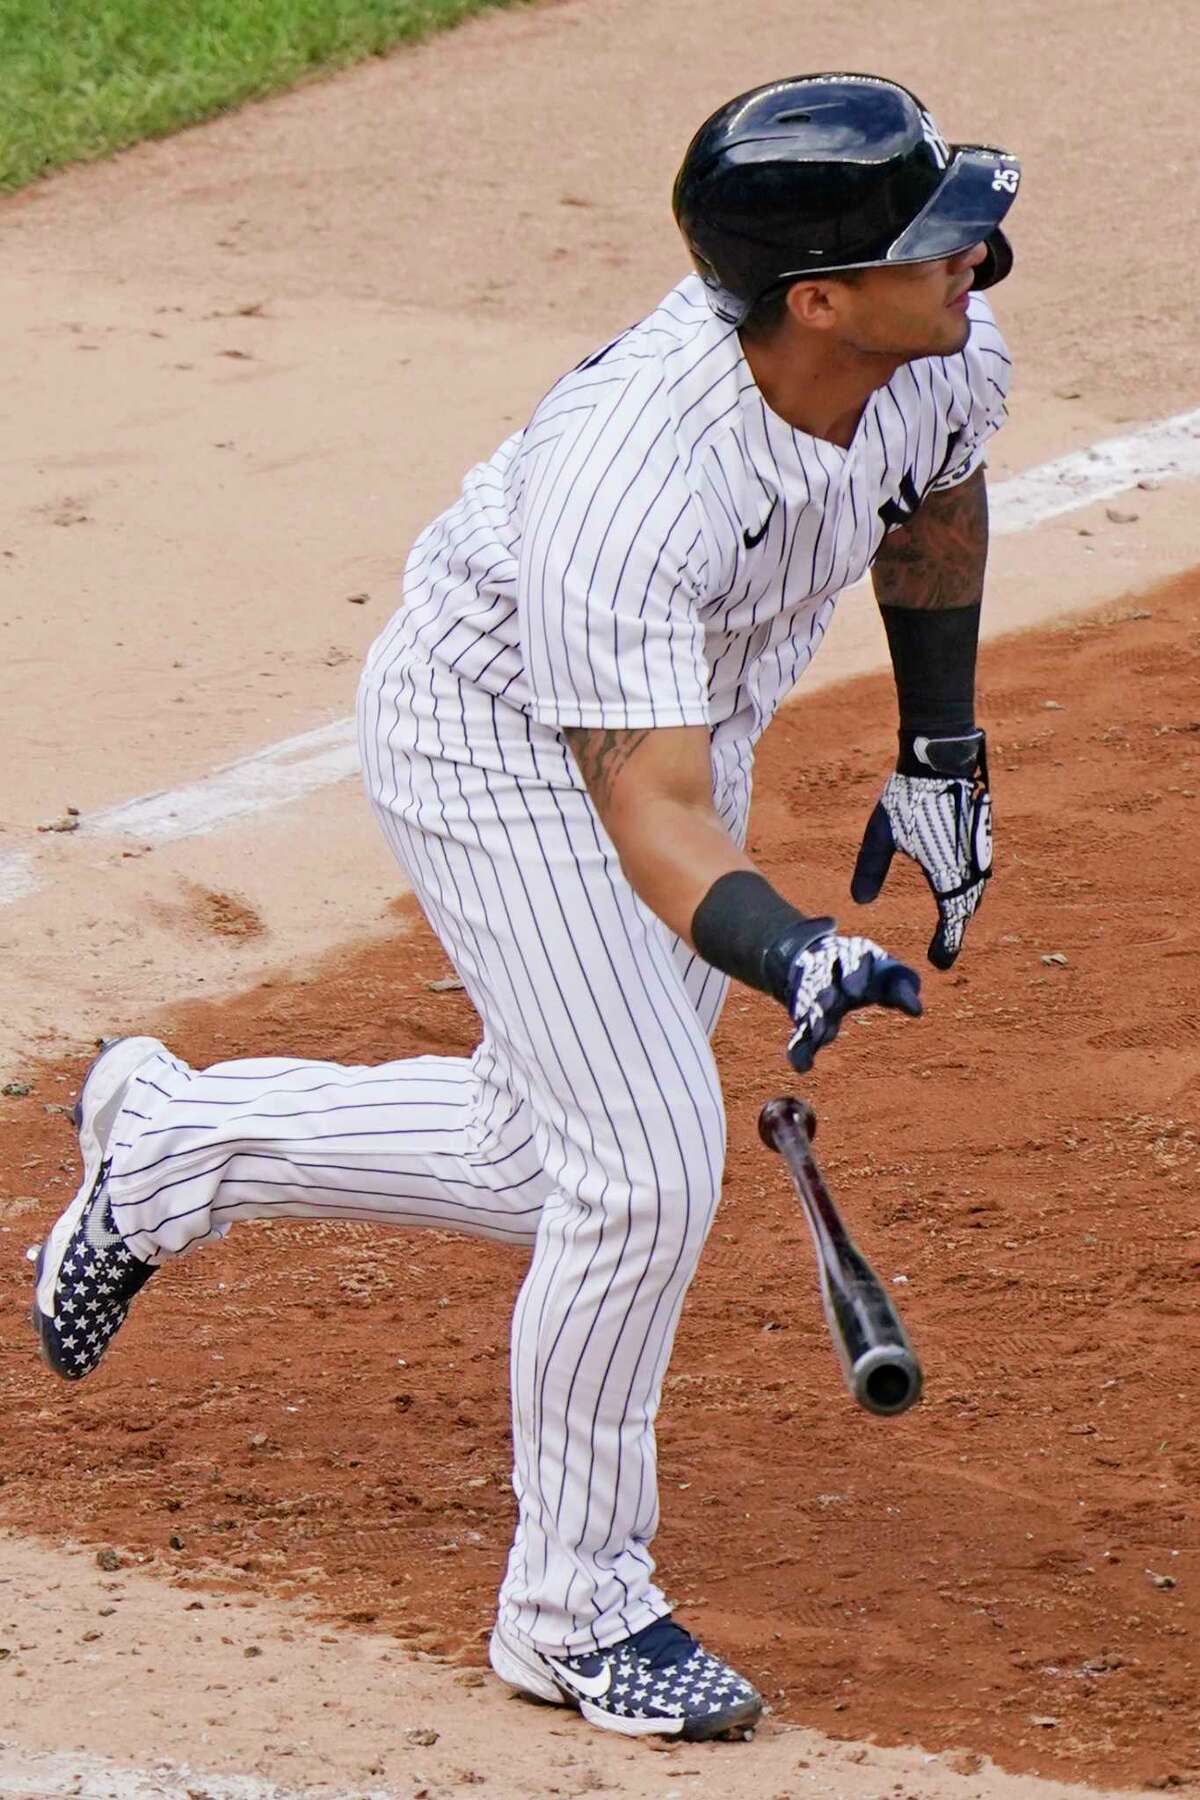 New York Yankees shortstop Gleyber Torres drops the bat as he watches his two-run double in the eighth inning of a baseball game against the Baltimore Orioles, Sunday, Sept. 13, 2020, at Yankee Stadium in New York. (AP Photo/Kathy Willens)